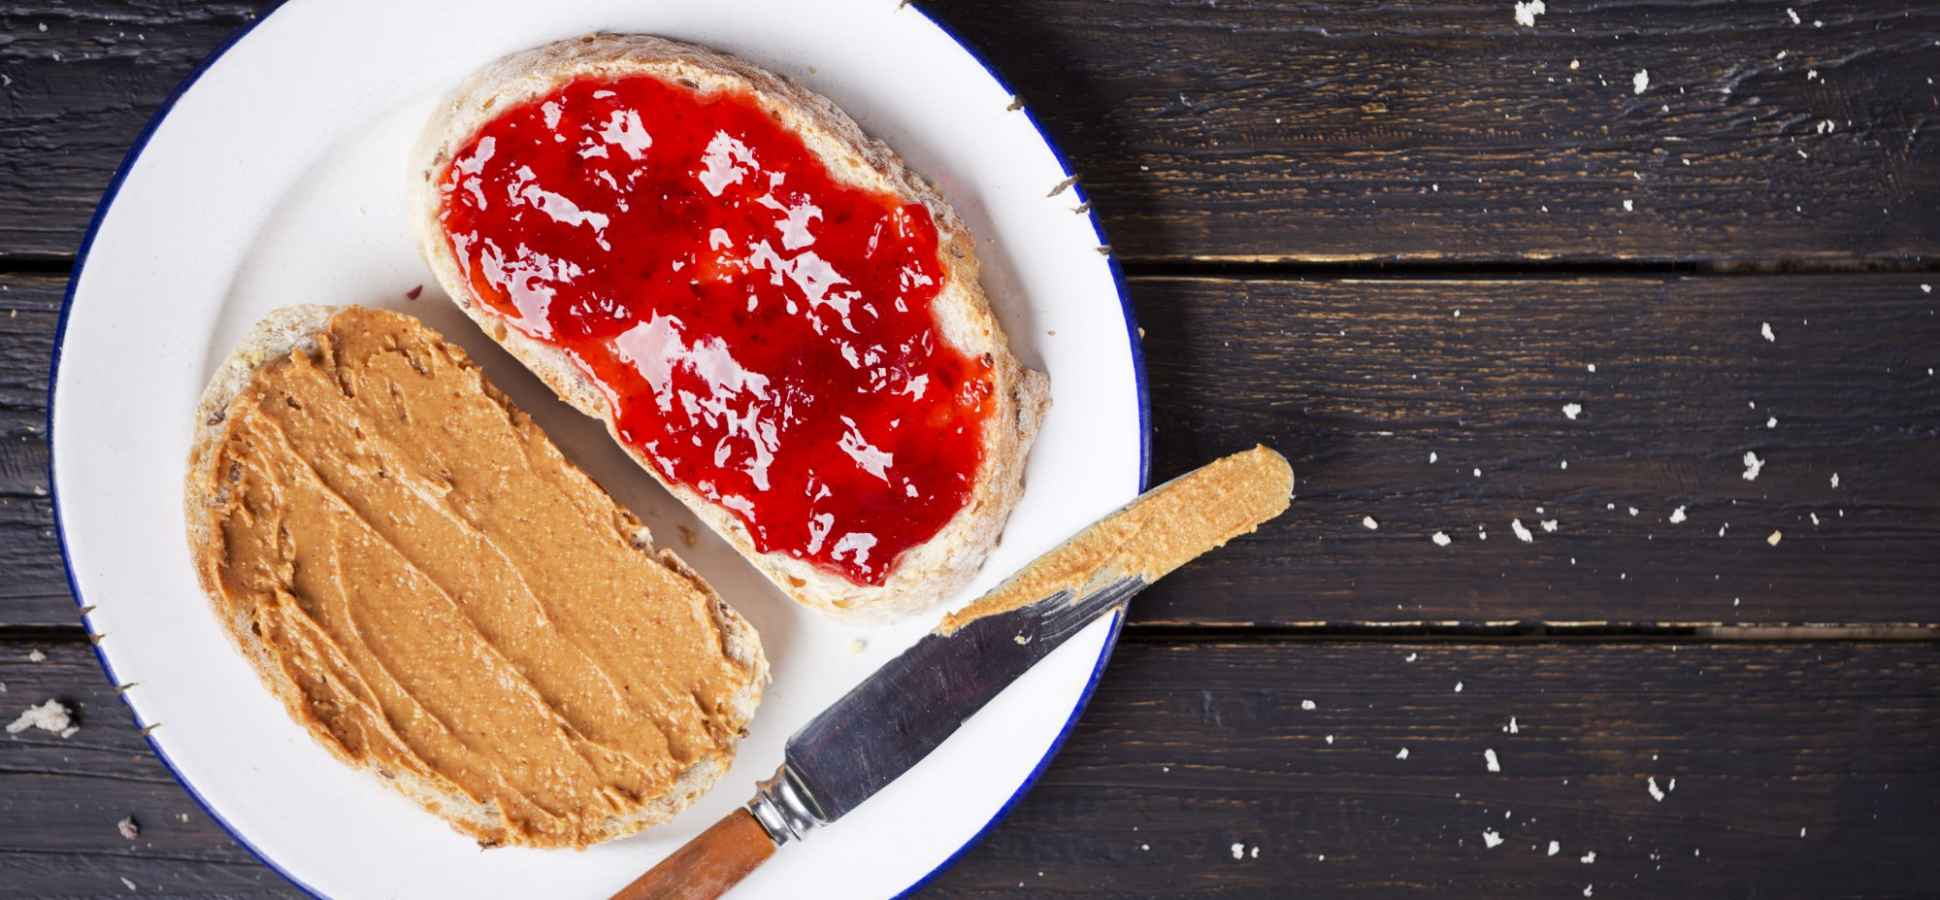 Breaking: NBA Players Are Addicted to a Performance Enhancing Substance--Peanut Butter and Jelly